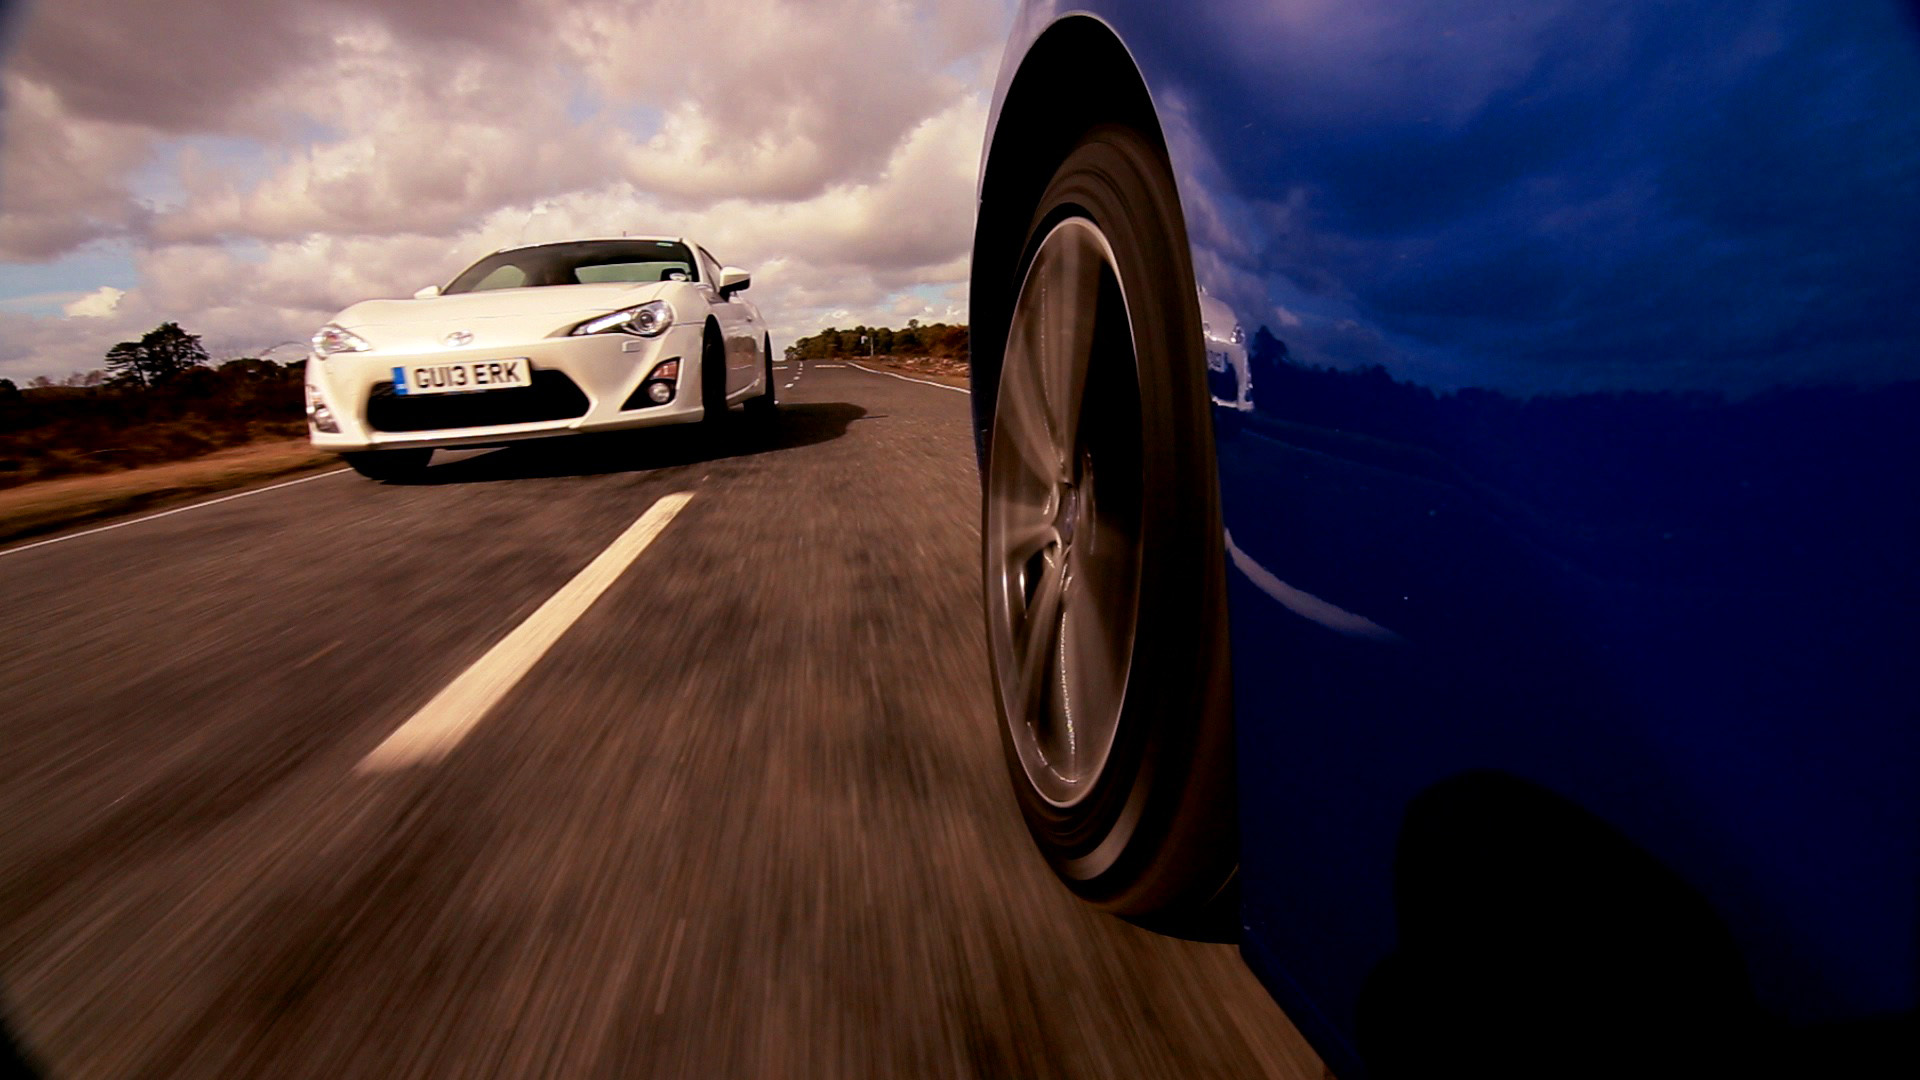 Video: Toyota plus Subaru equals awesome: The GT86 and BRZ story